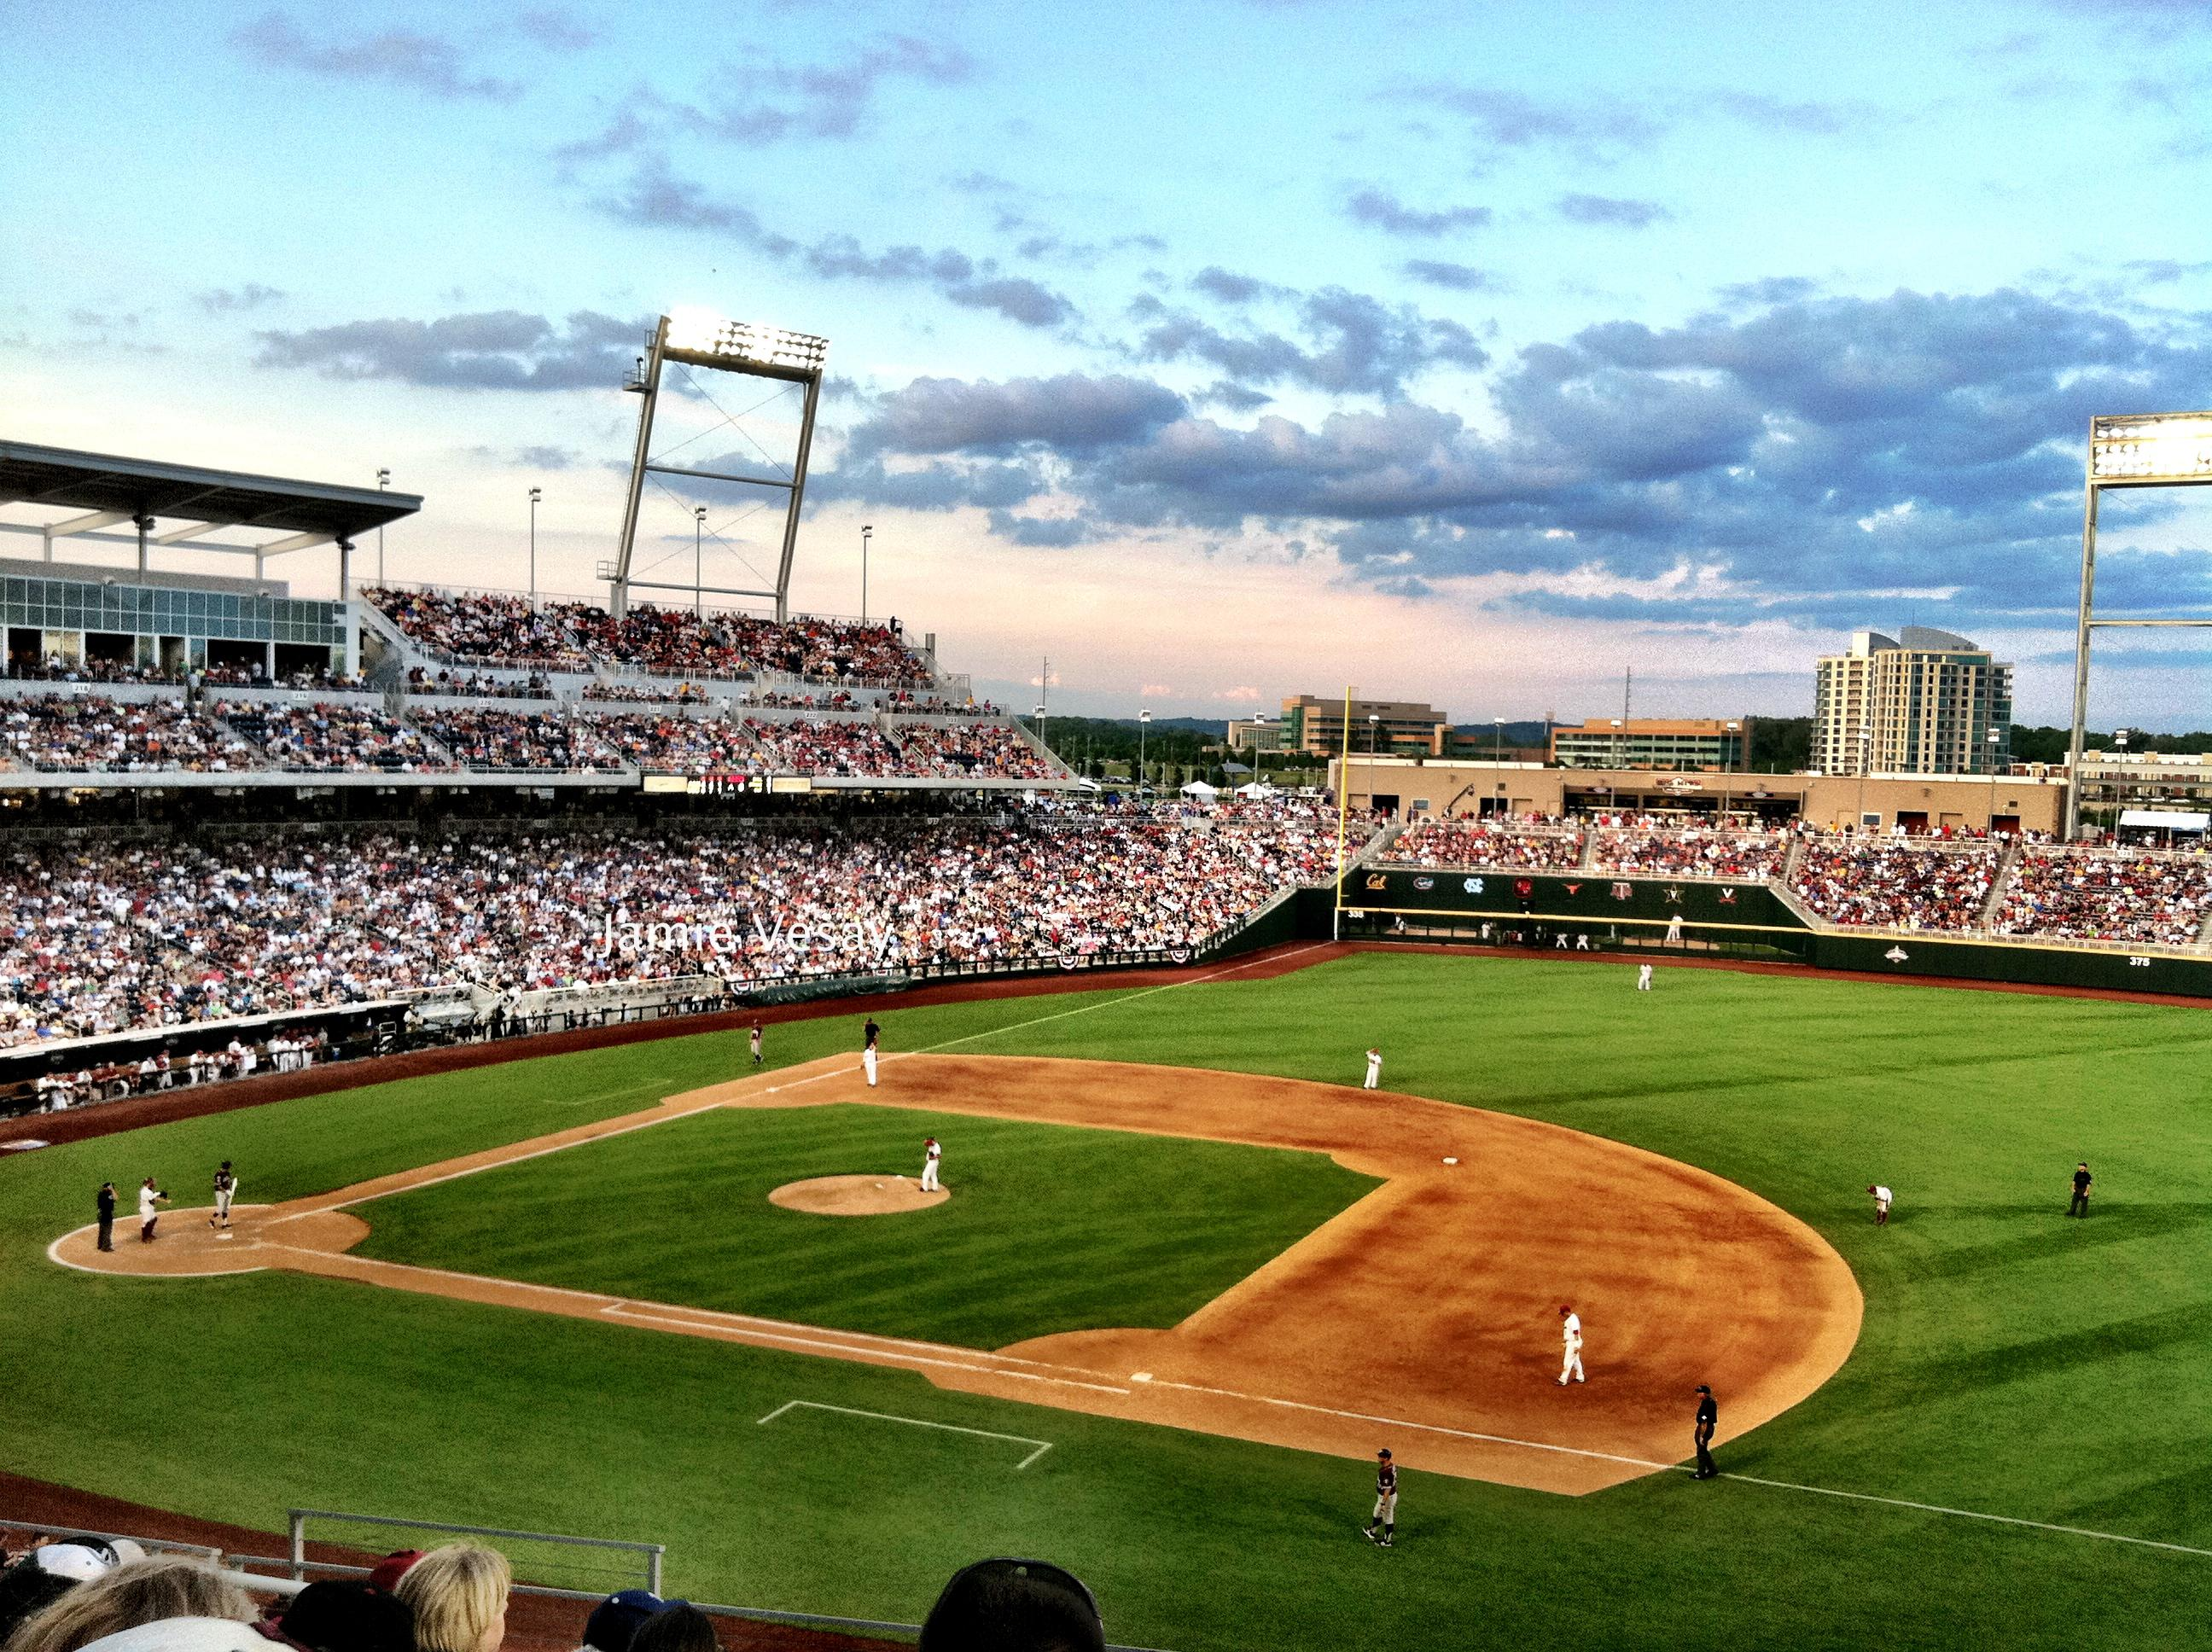 College world series cws in omaha filming photography locations in nebraska usa for Garden city community college baseball